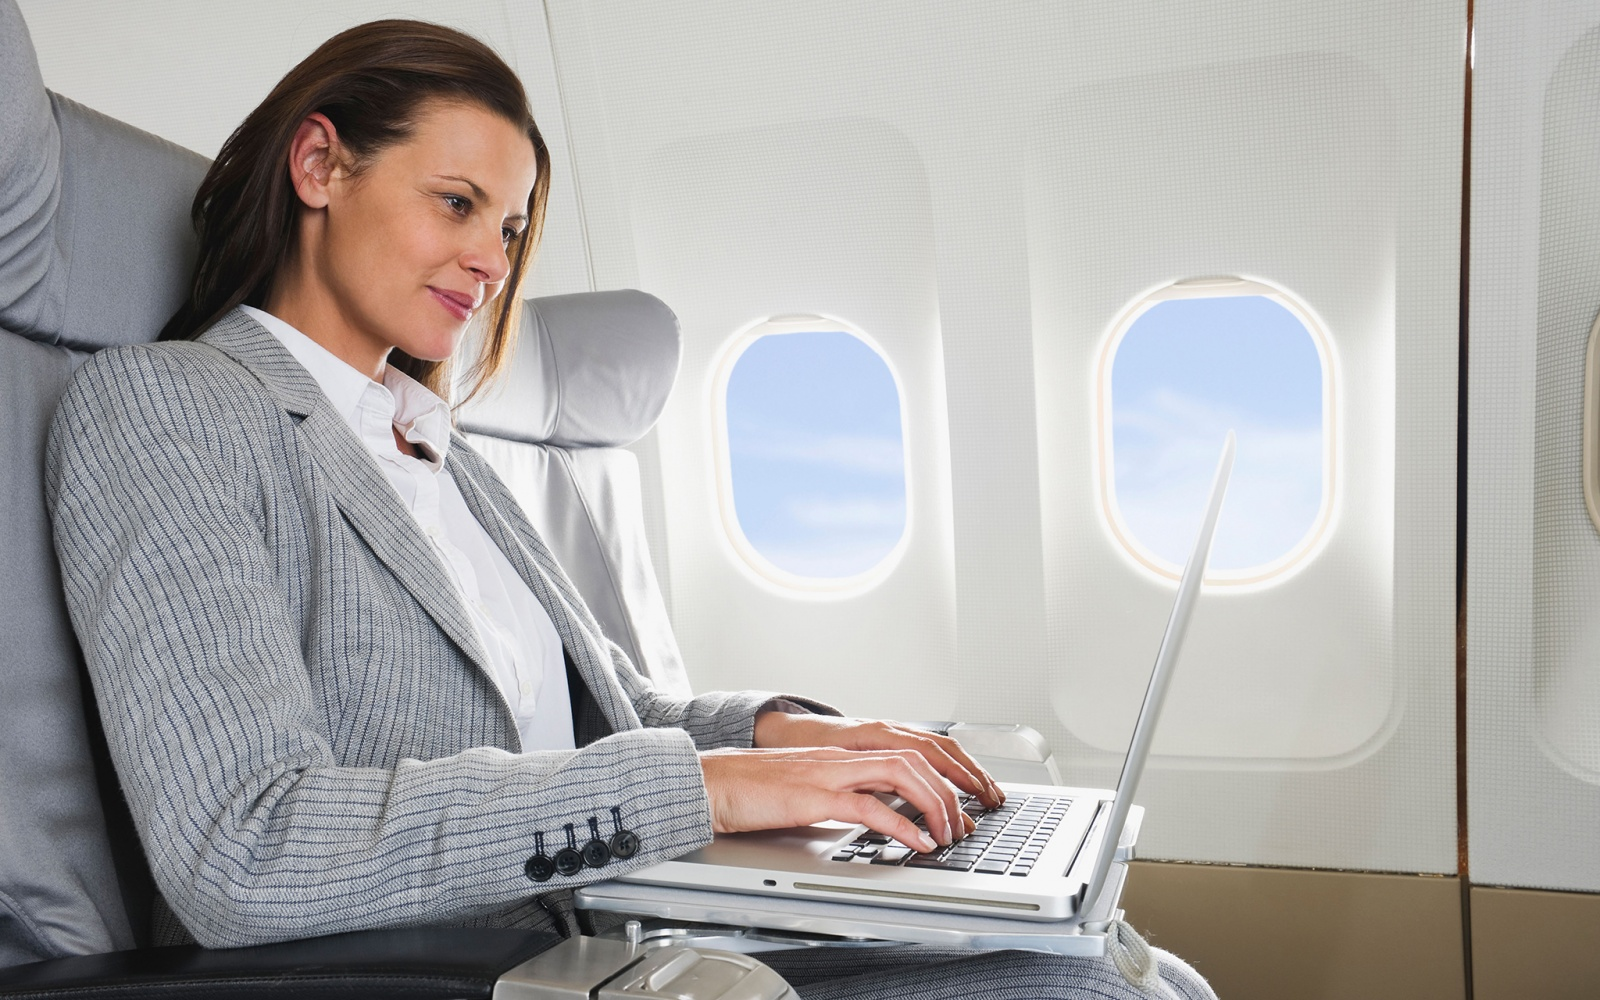 Woman on Laptop on Airplane